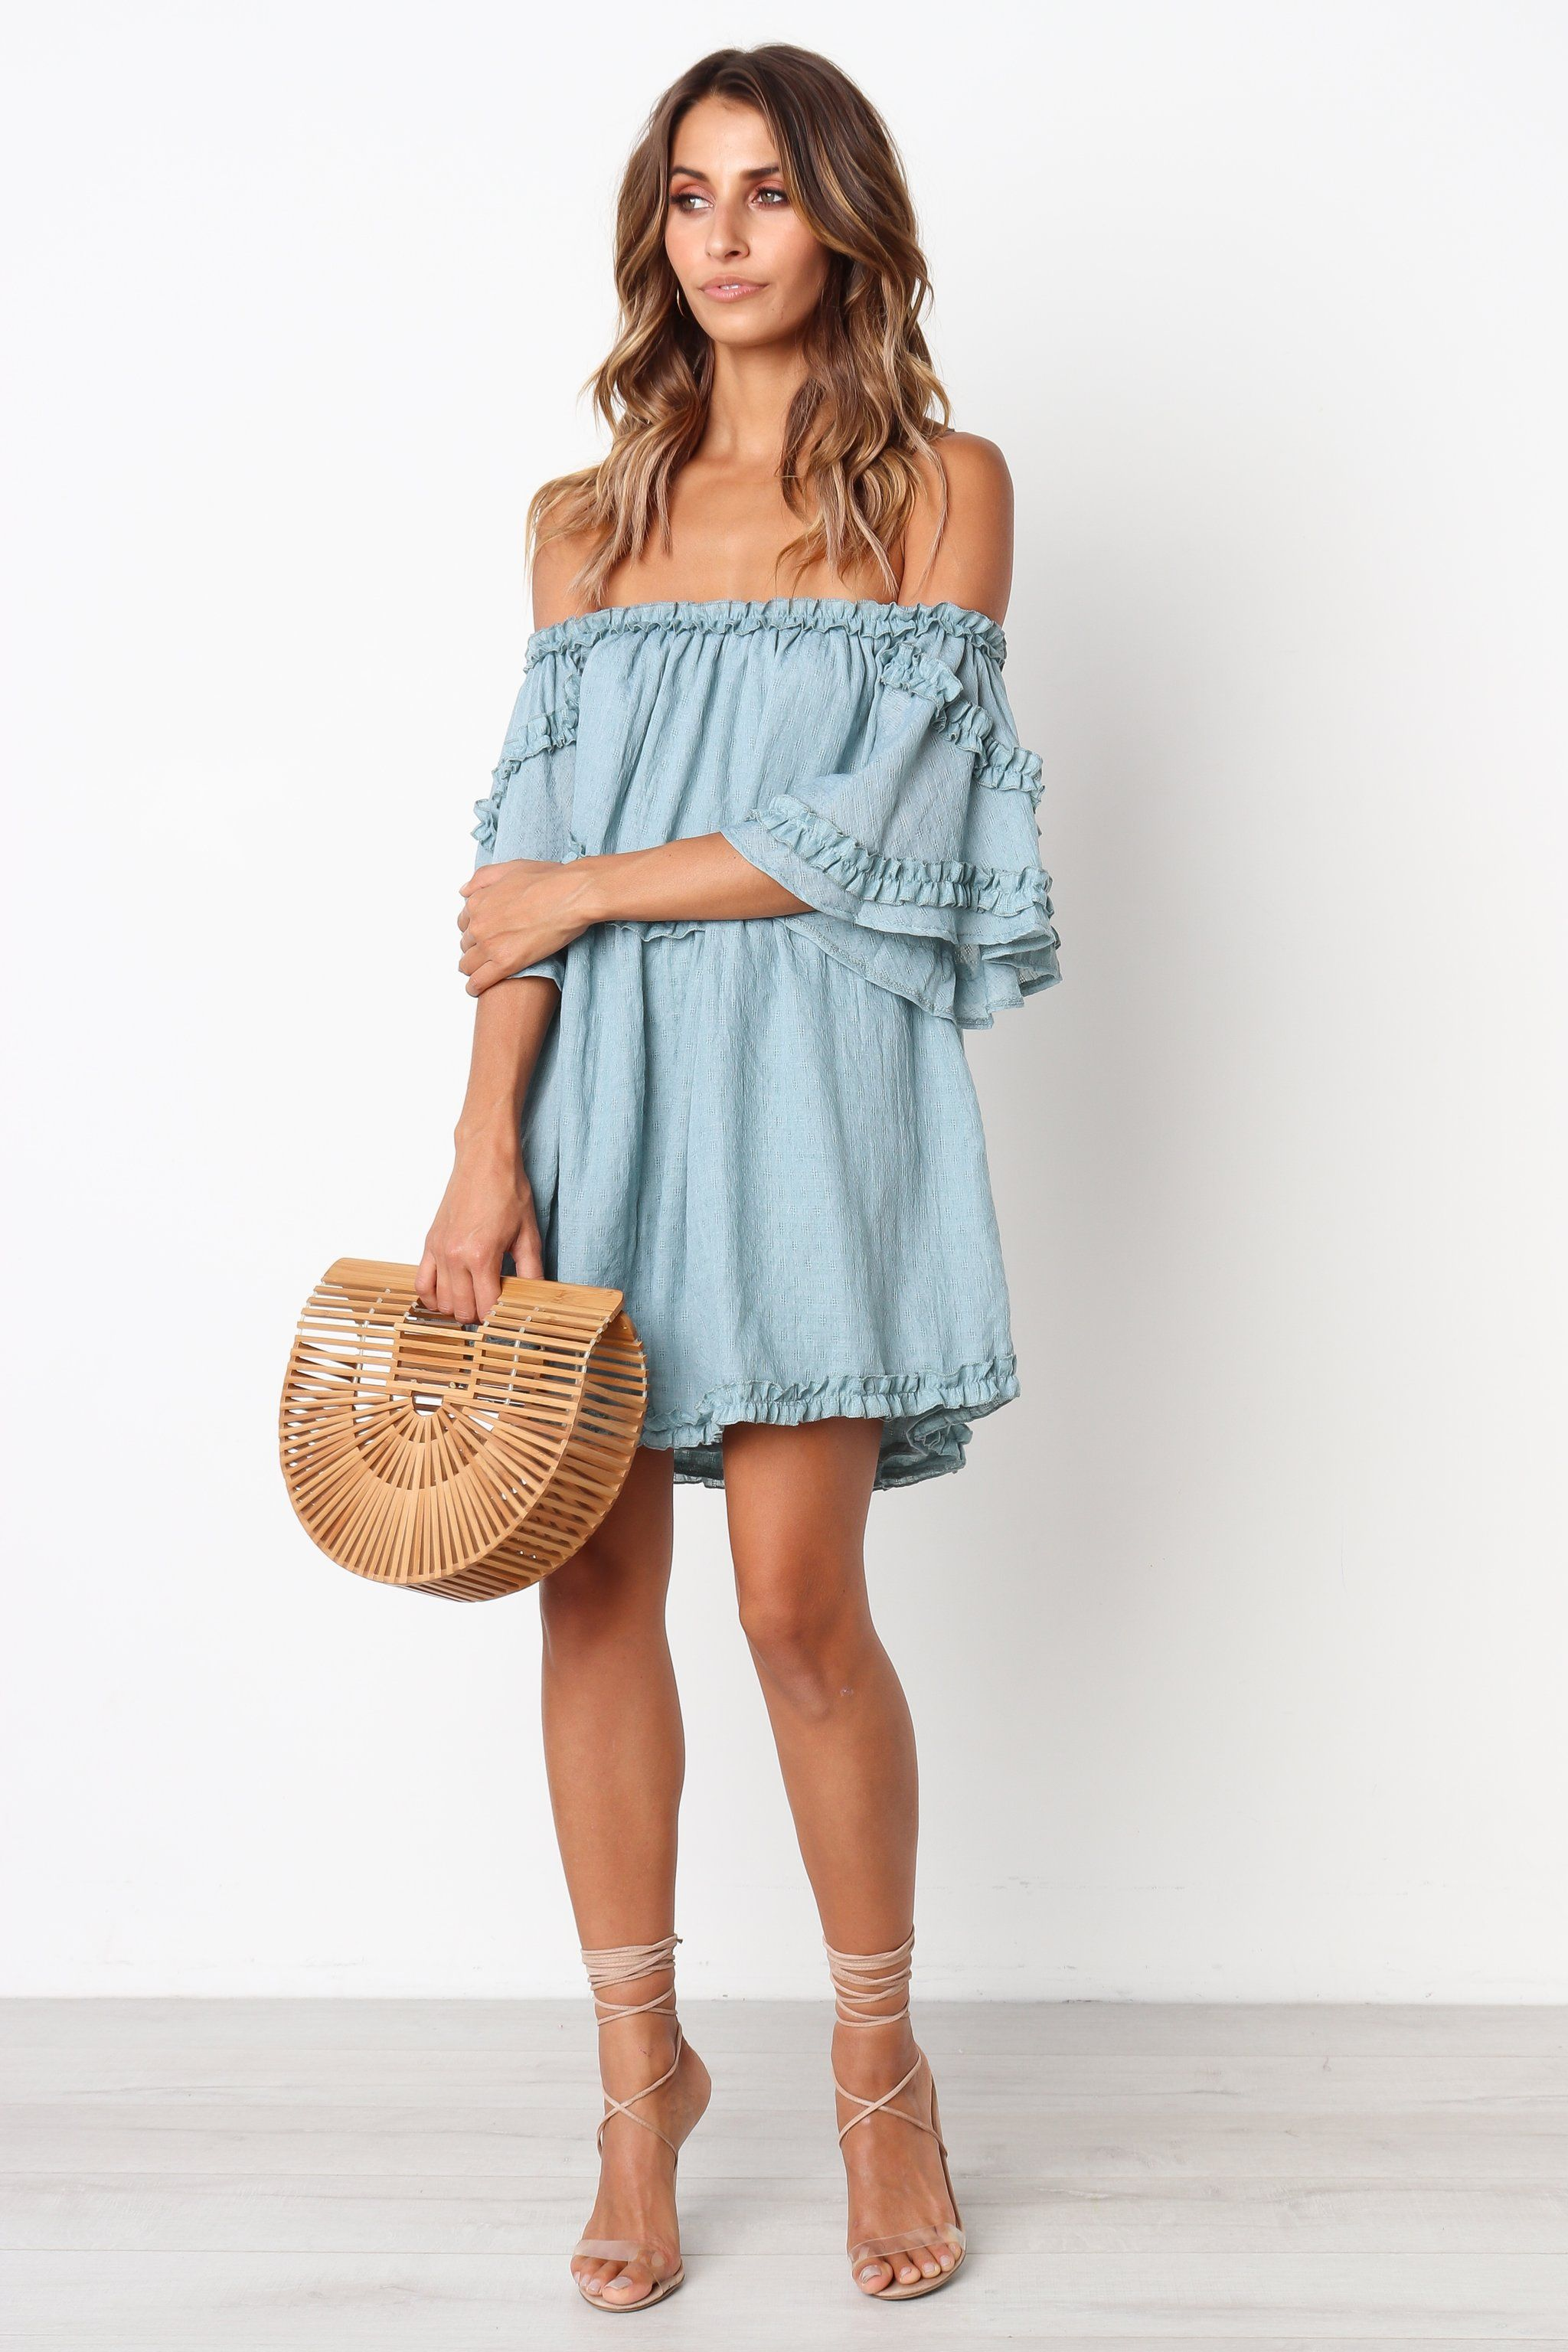 66f91f925a790 cute off shoulder dress